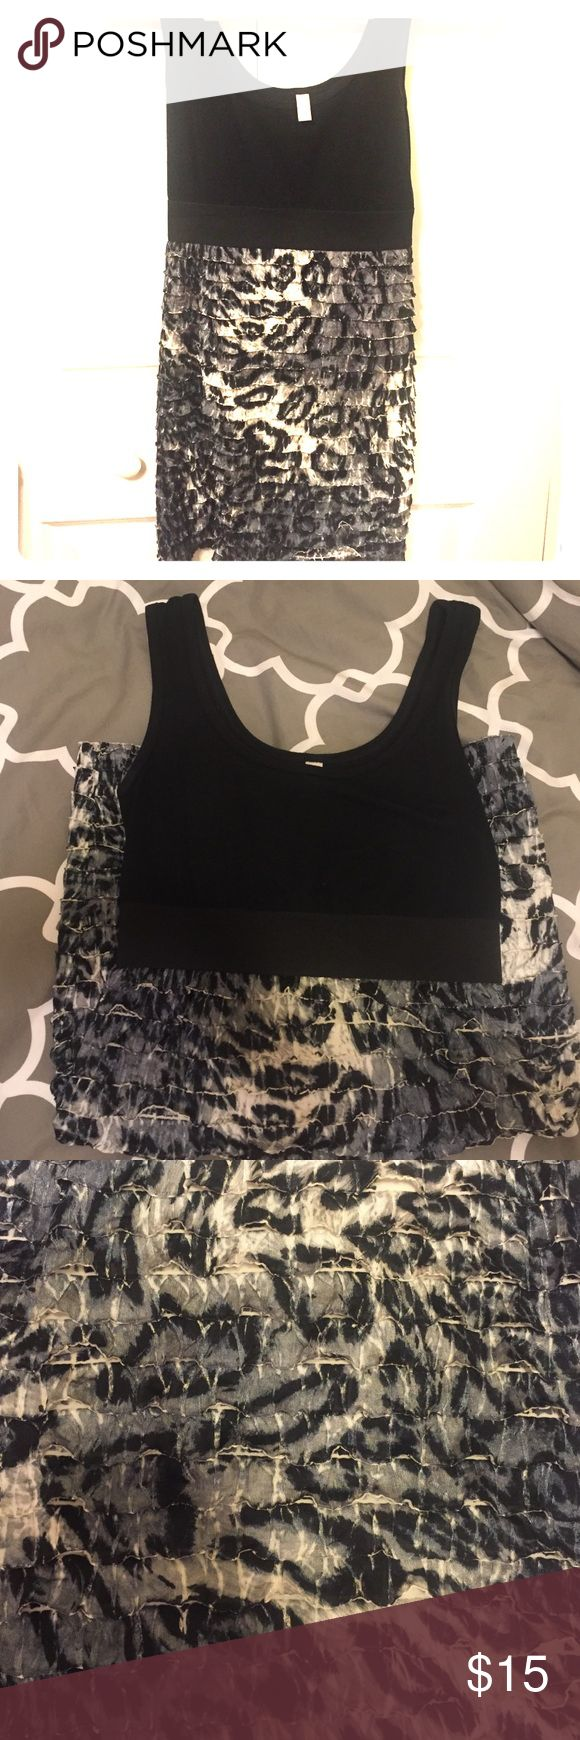 Black and animal print dress Cute form fitting black and animal print dress. Perfect for a girls night out. Dresses Mini